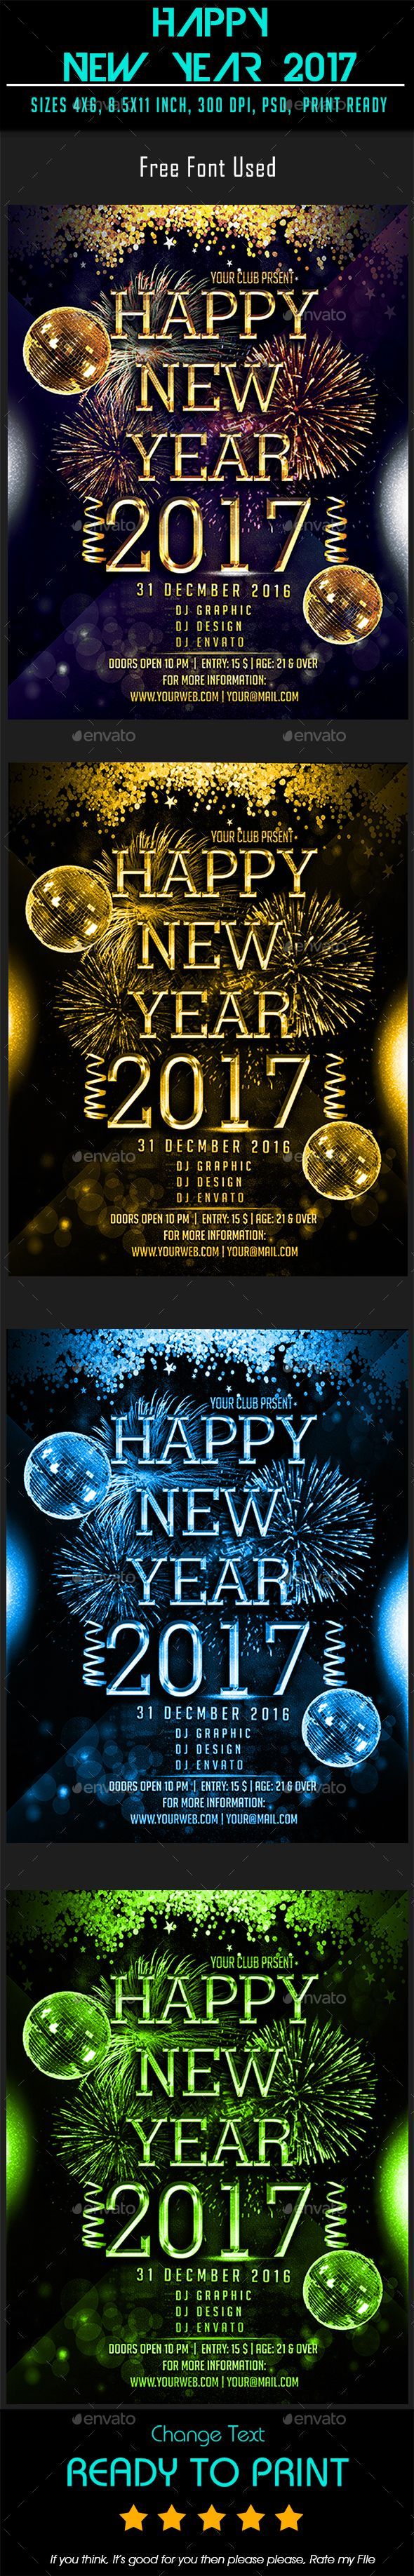 Happy New Year 2017 — Photoshop PSD #birthday #eve • Available here → https://graphicriver.net/item/happy-new-year-2017/19173231?ref=pxcr